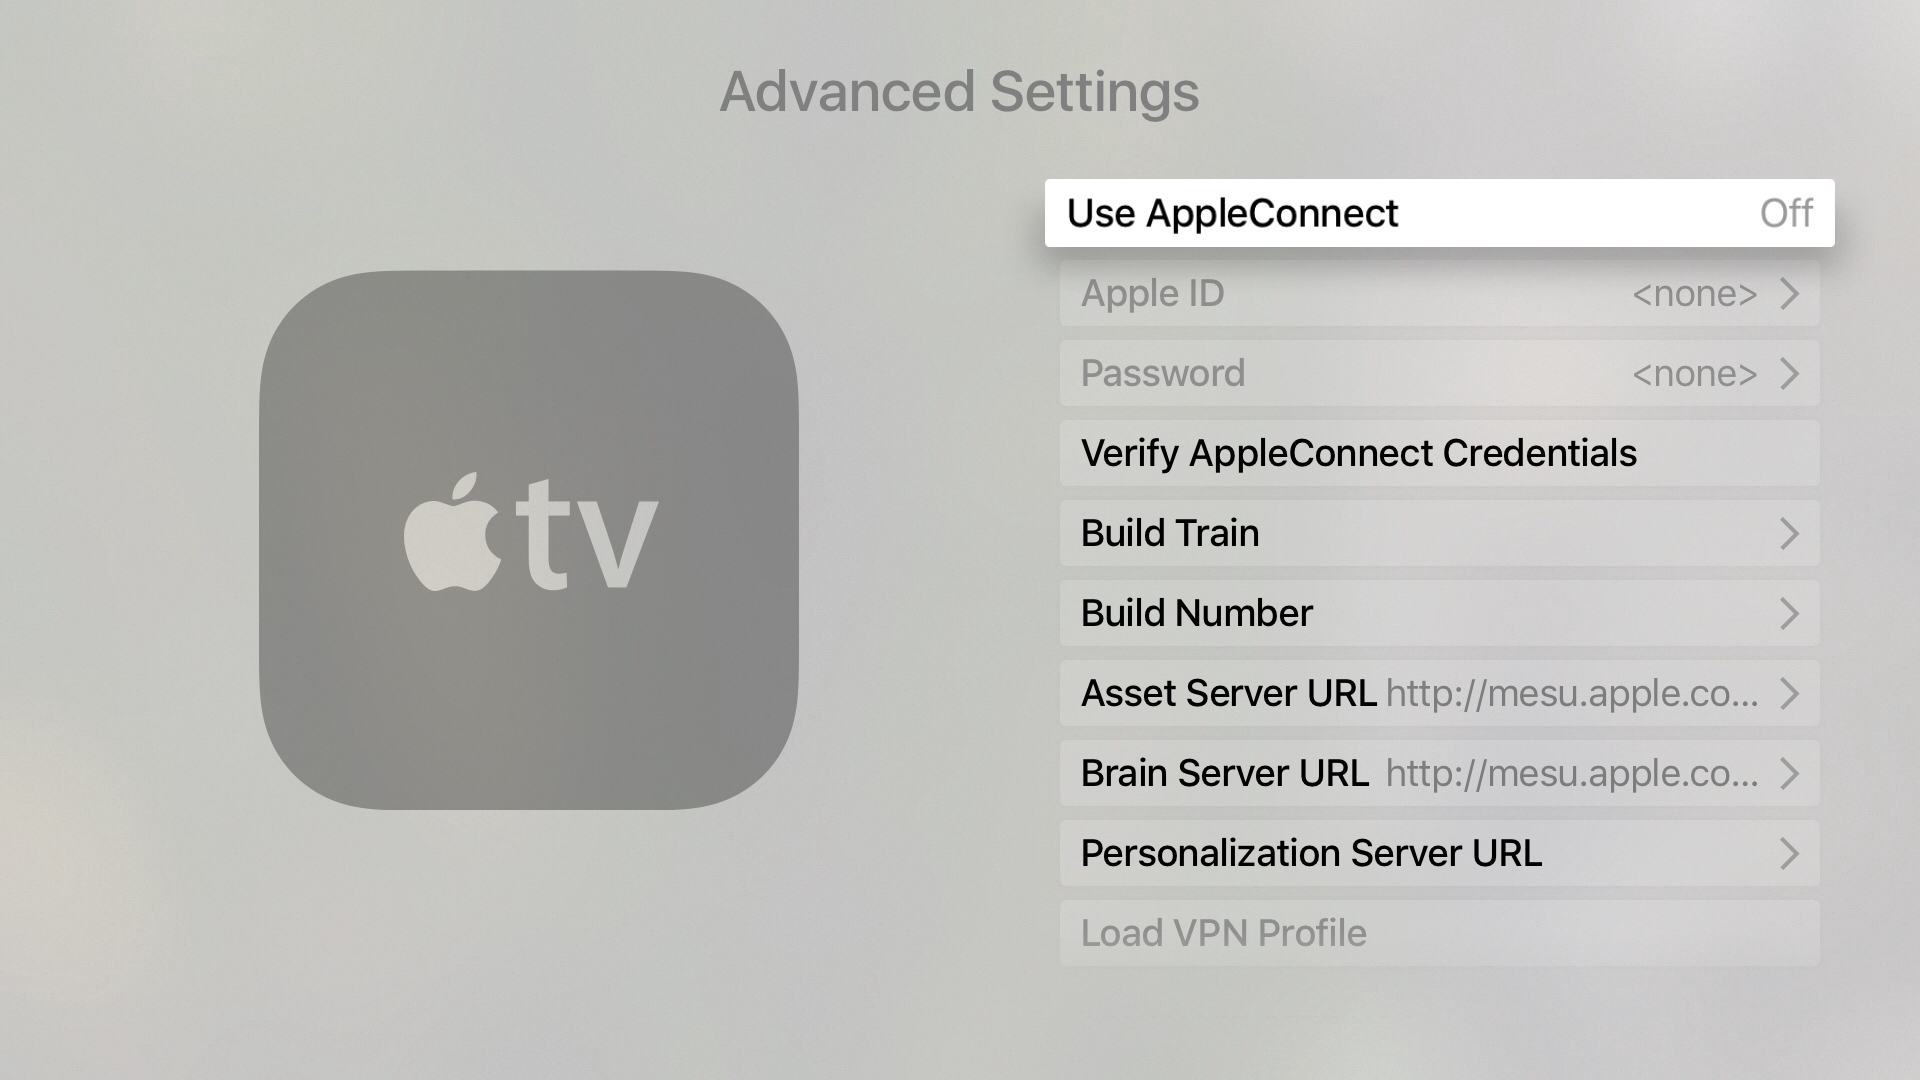 Apple TV advanced Settings Menu